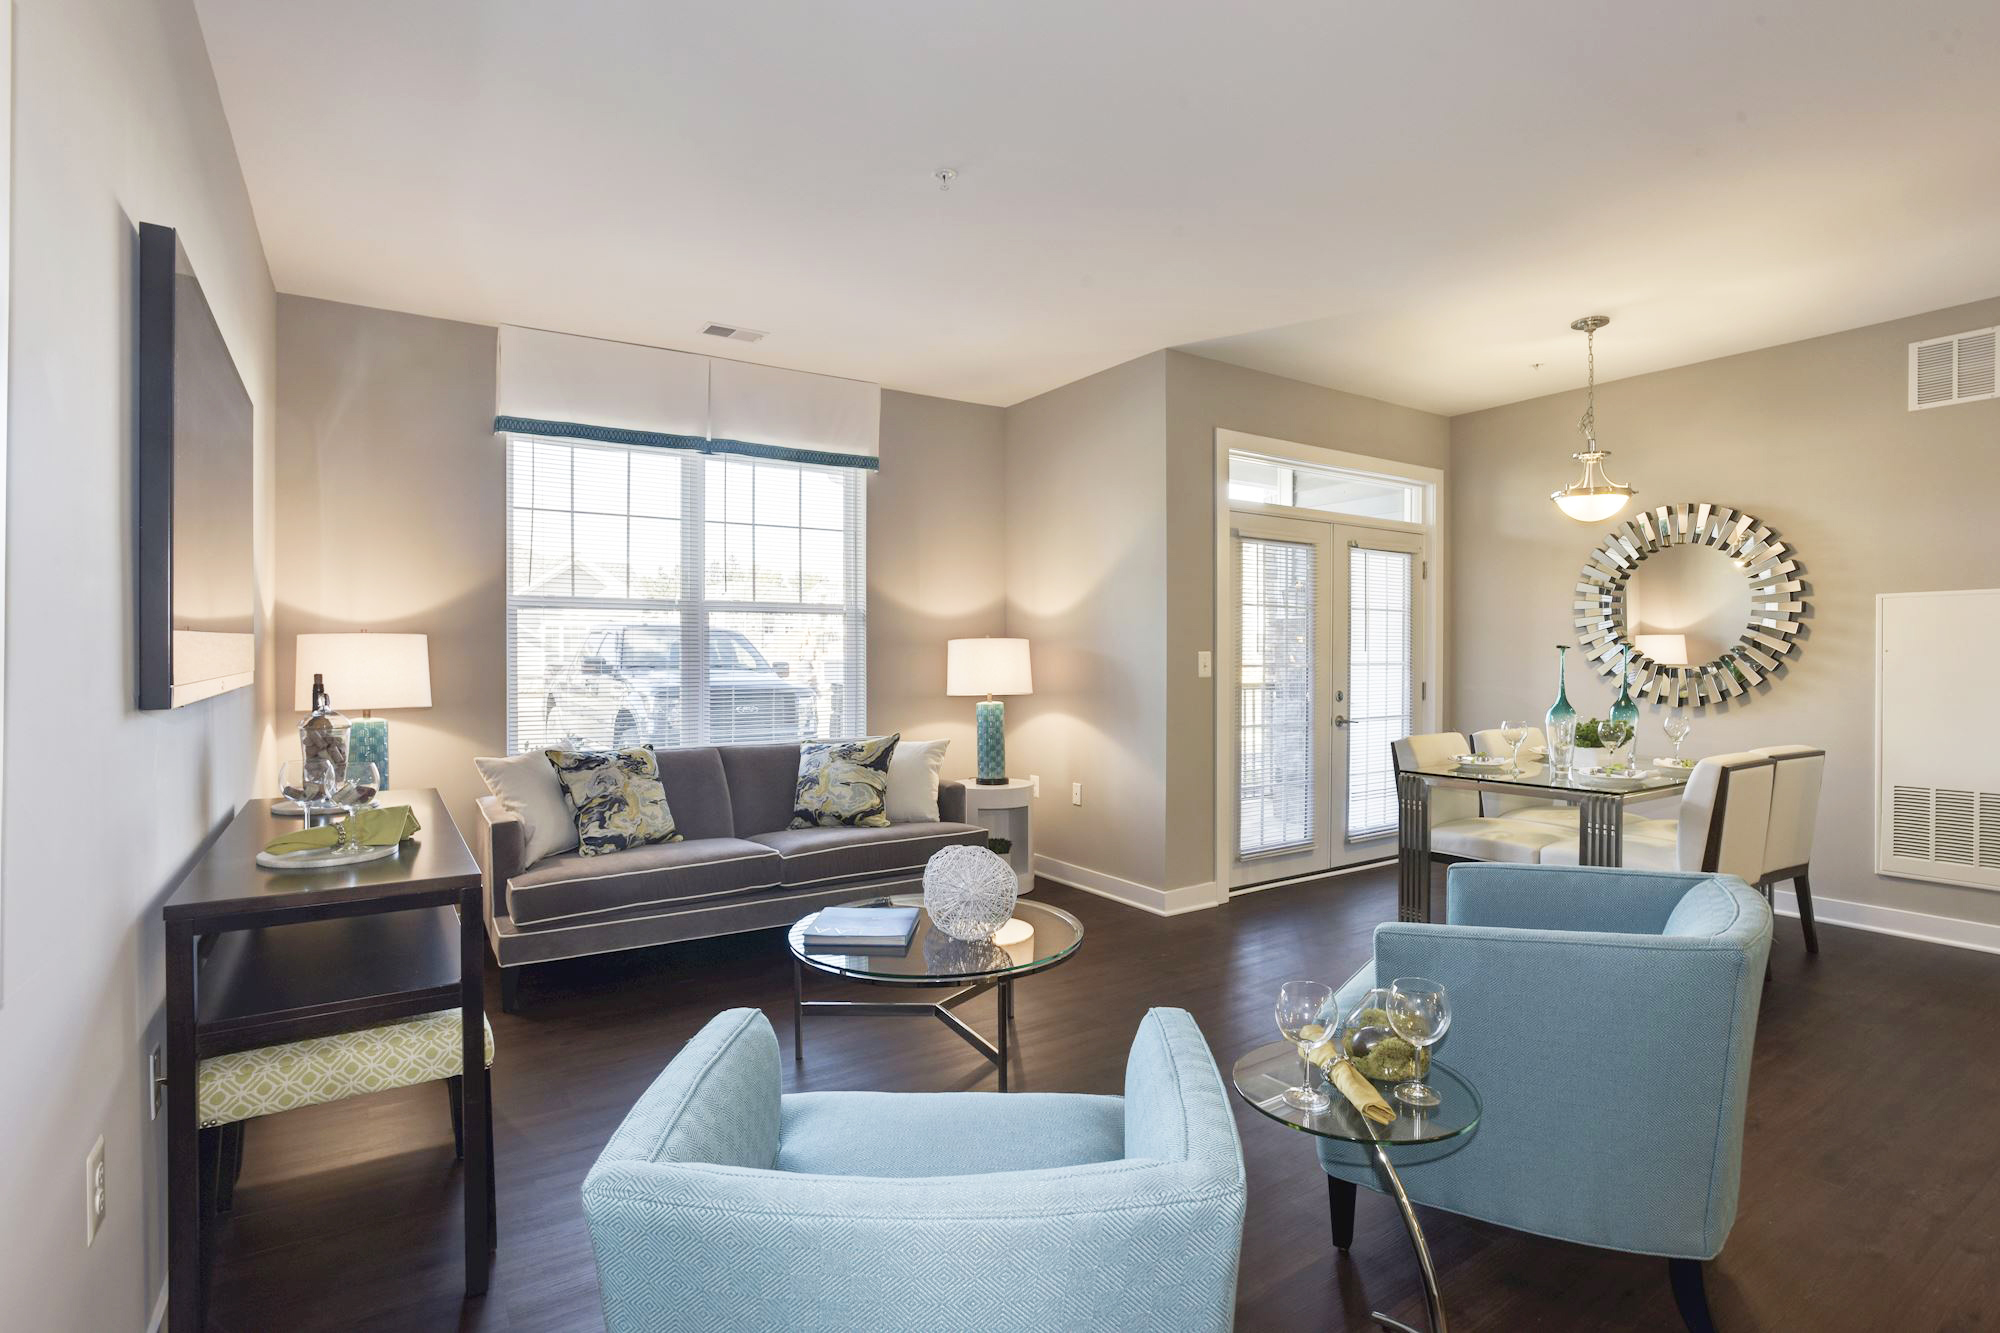 Avanti Luxury Apartments in Bel Air, MD - Living Area